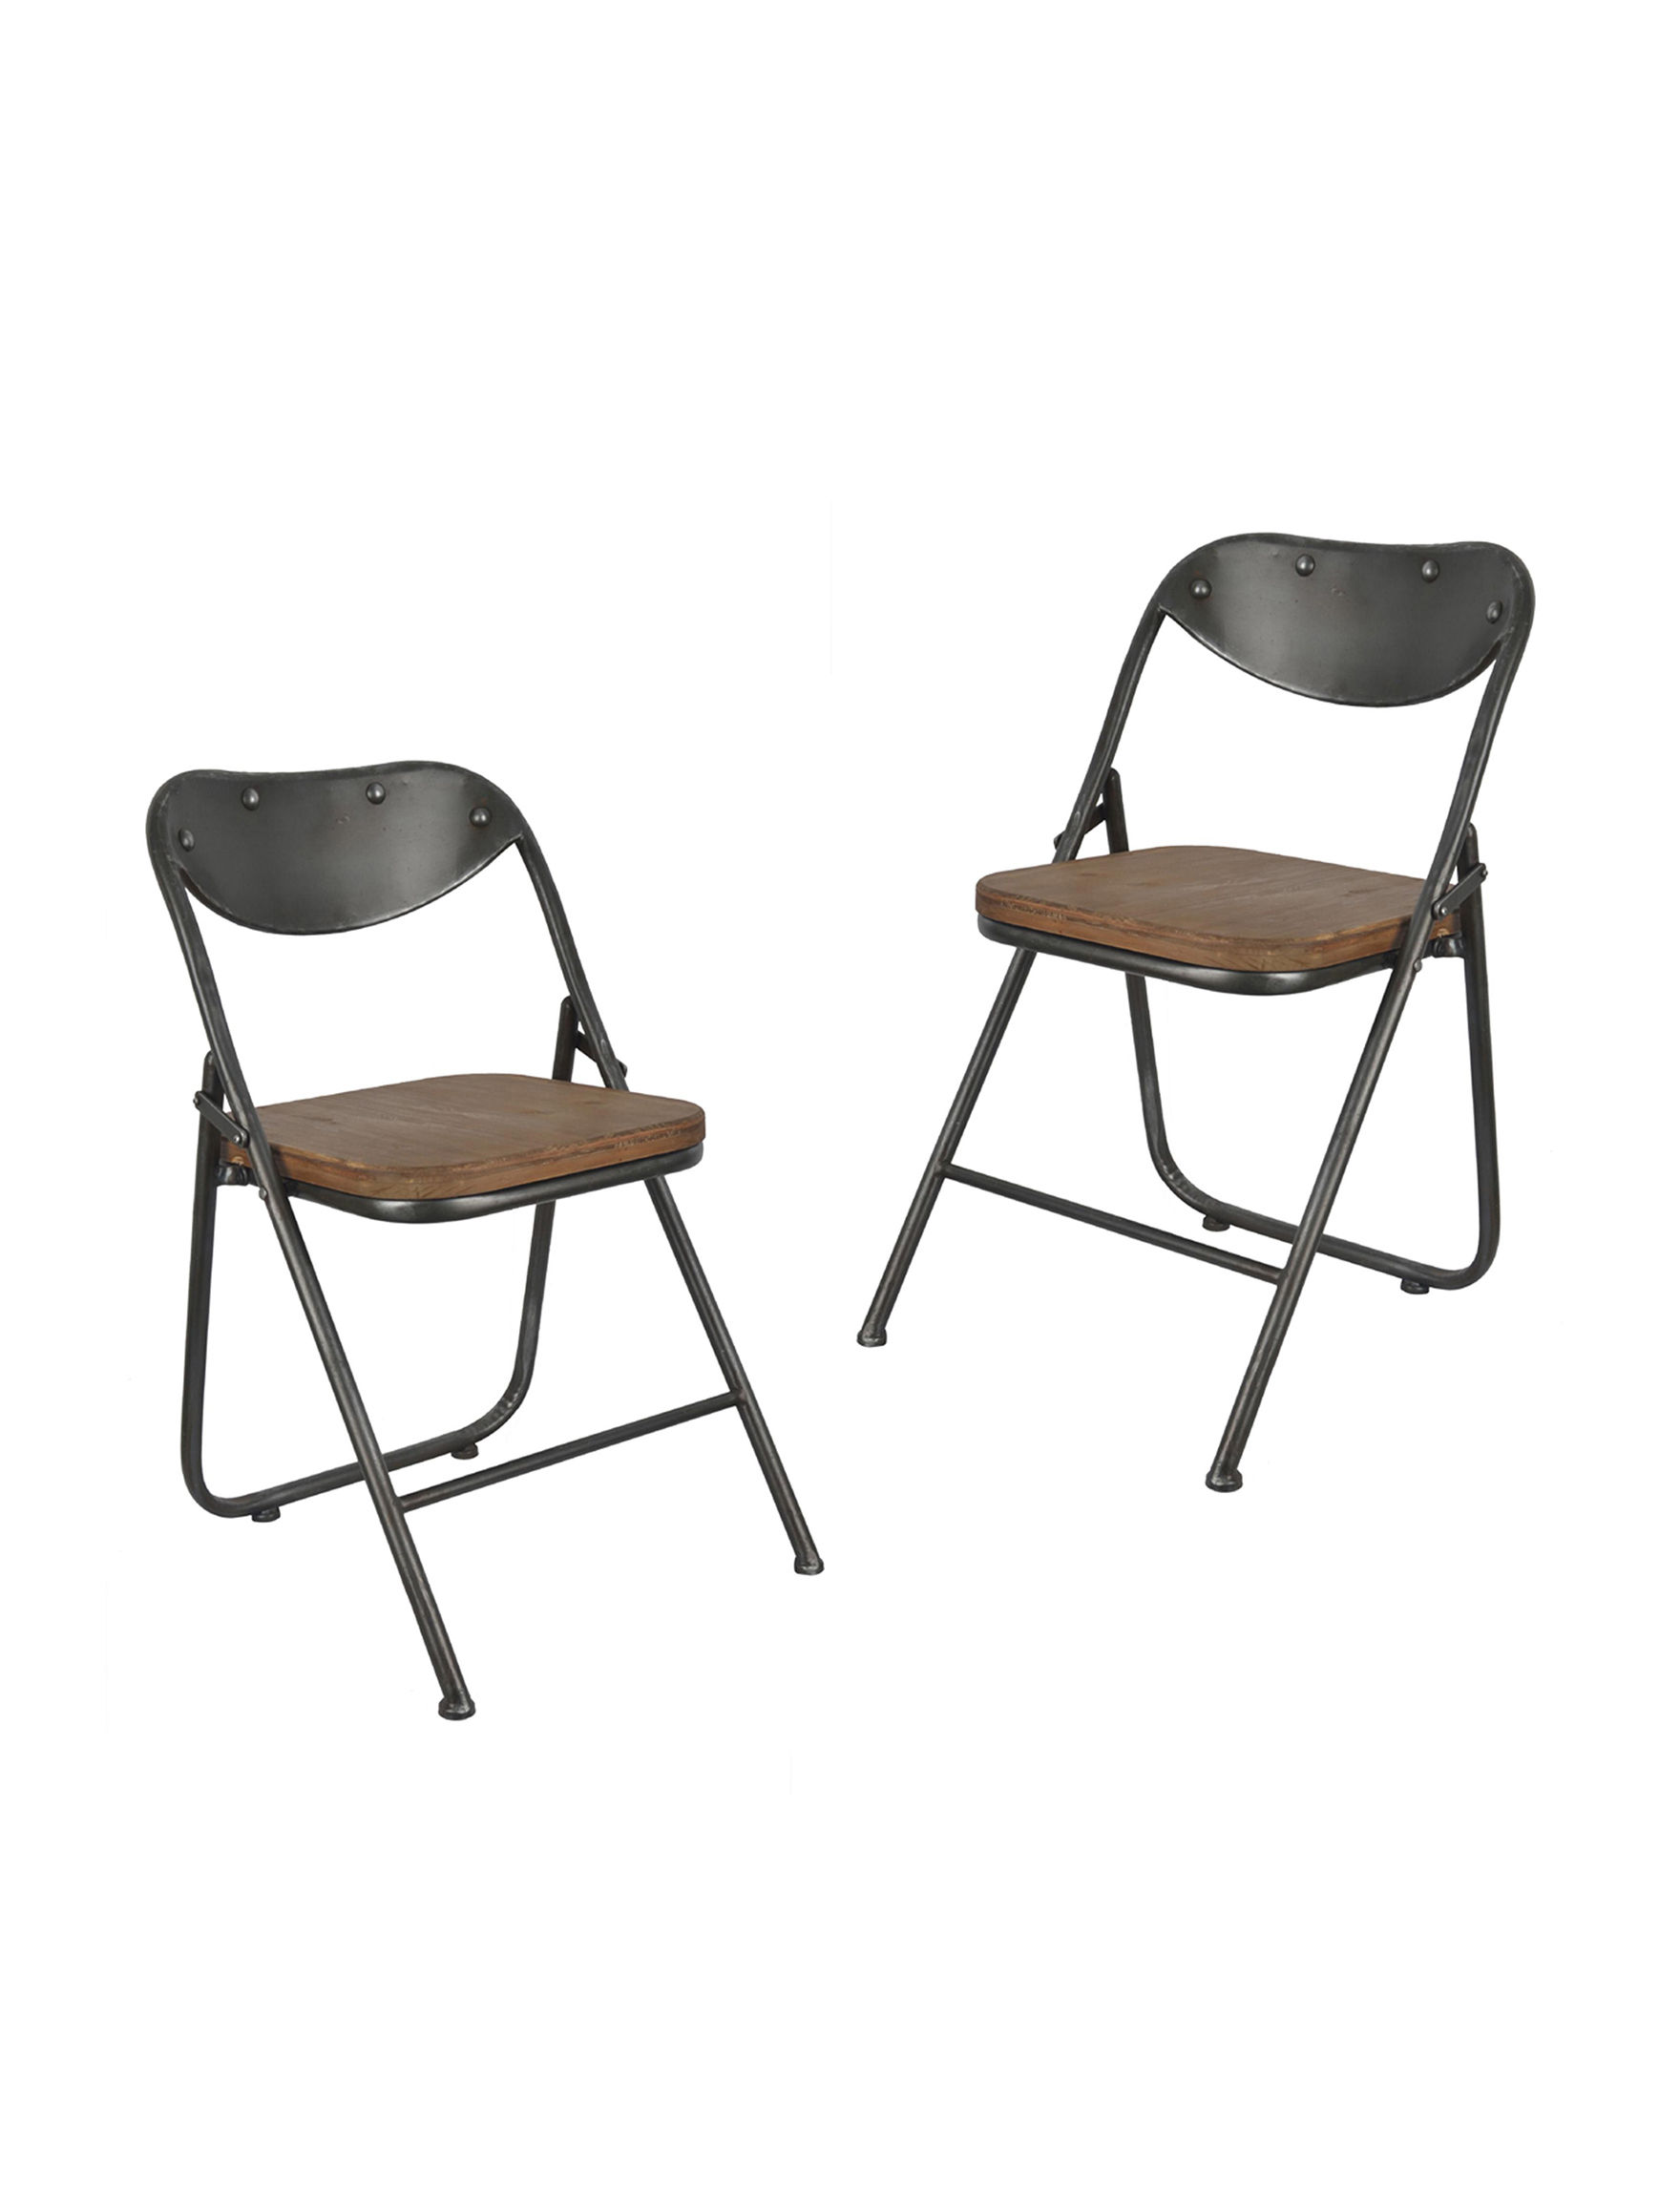 Decor Therapy Brown / Grey Patio & Outdoor Furniture